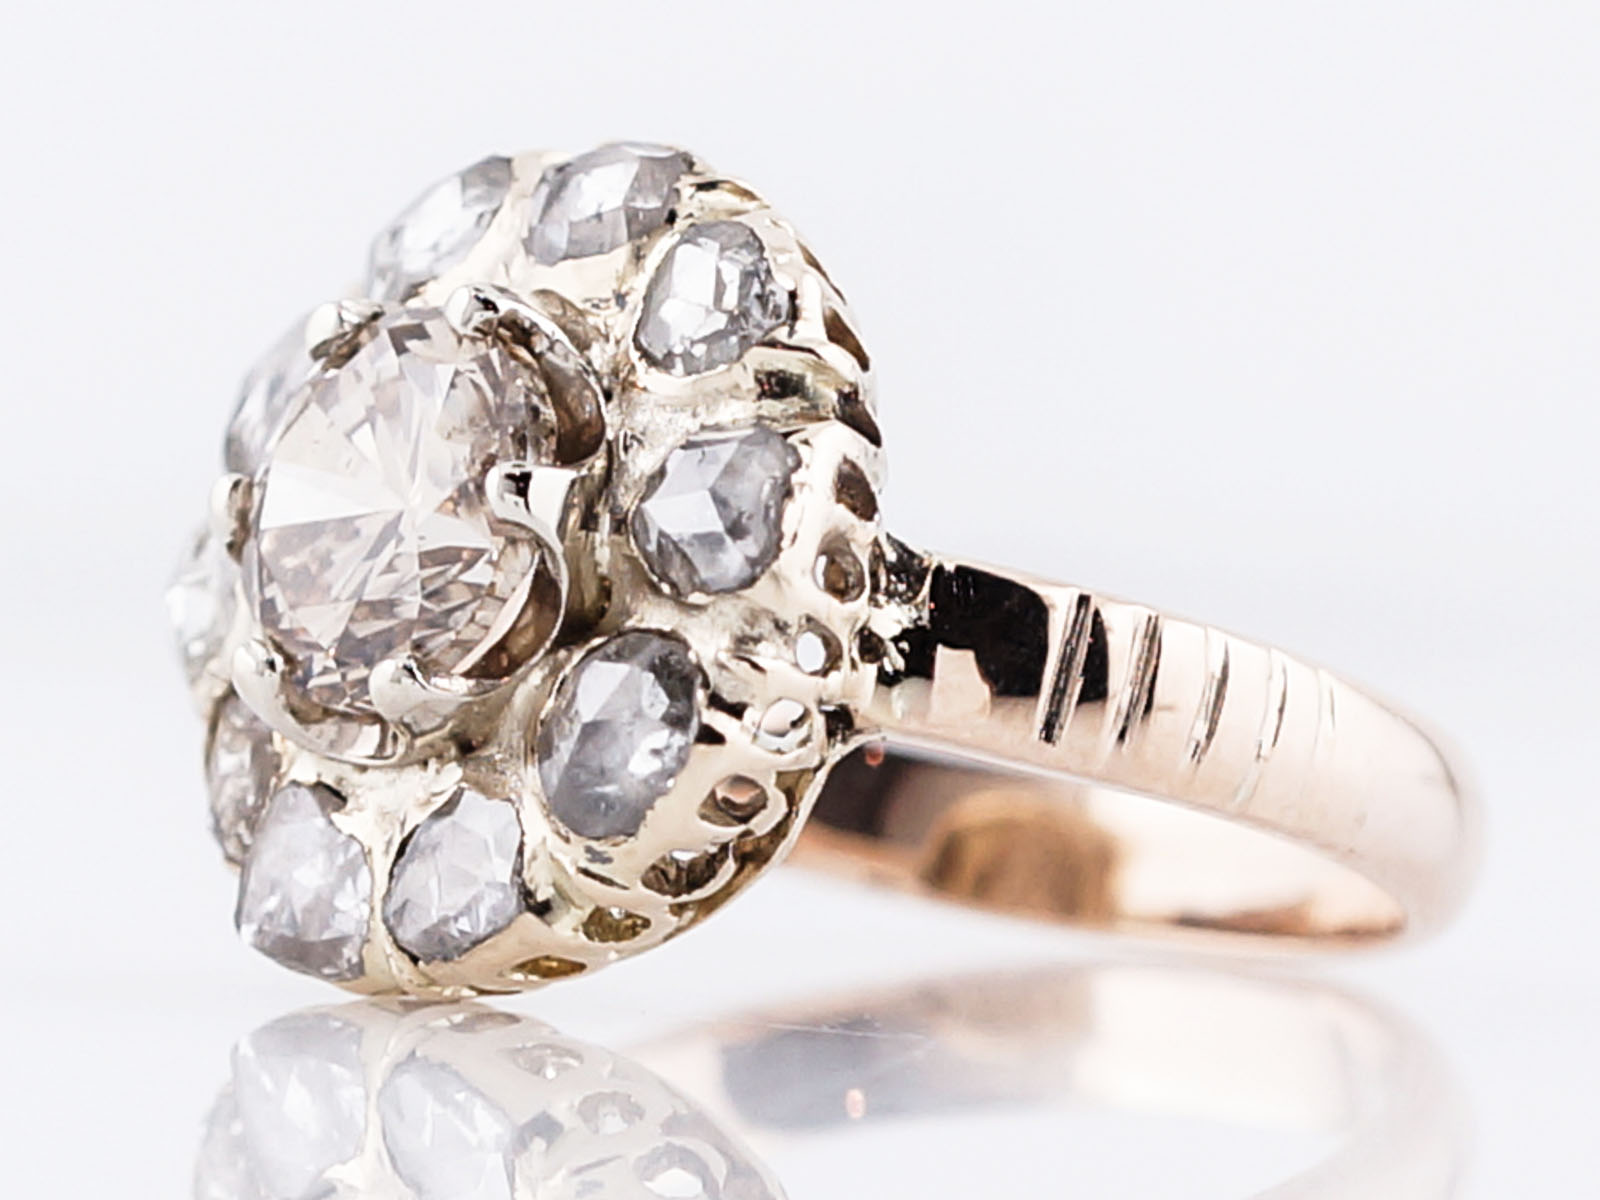 Antique Right Hand Ring Victorian 1.03 Round Brilliant Cut Diamond in 10k Yellow Gold-2